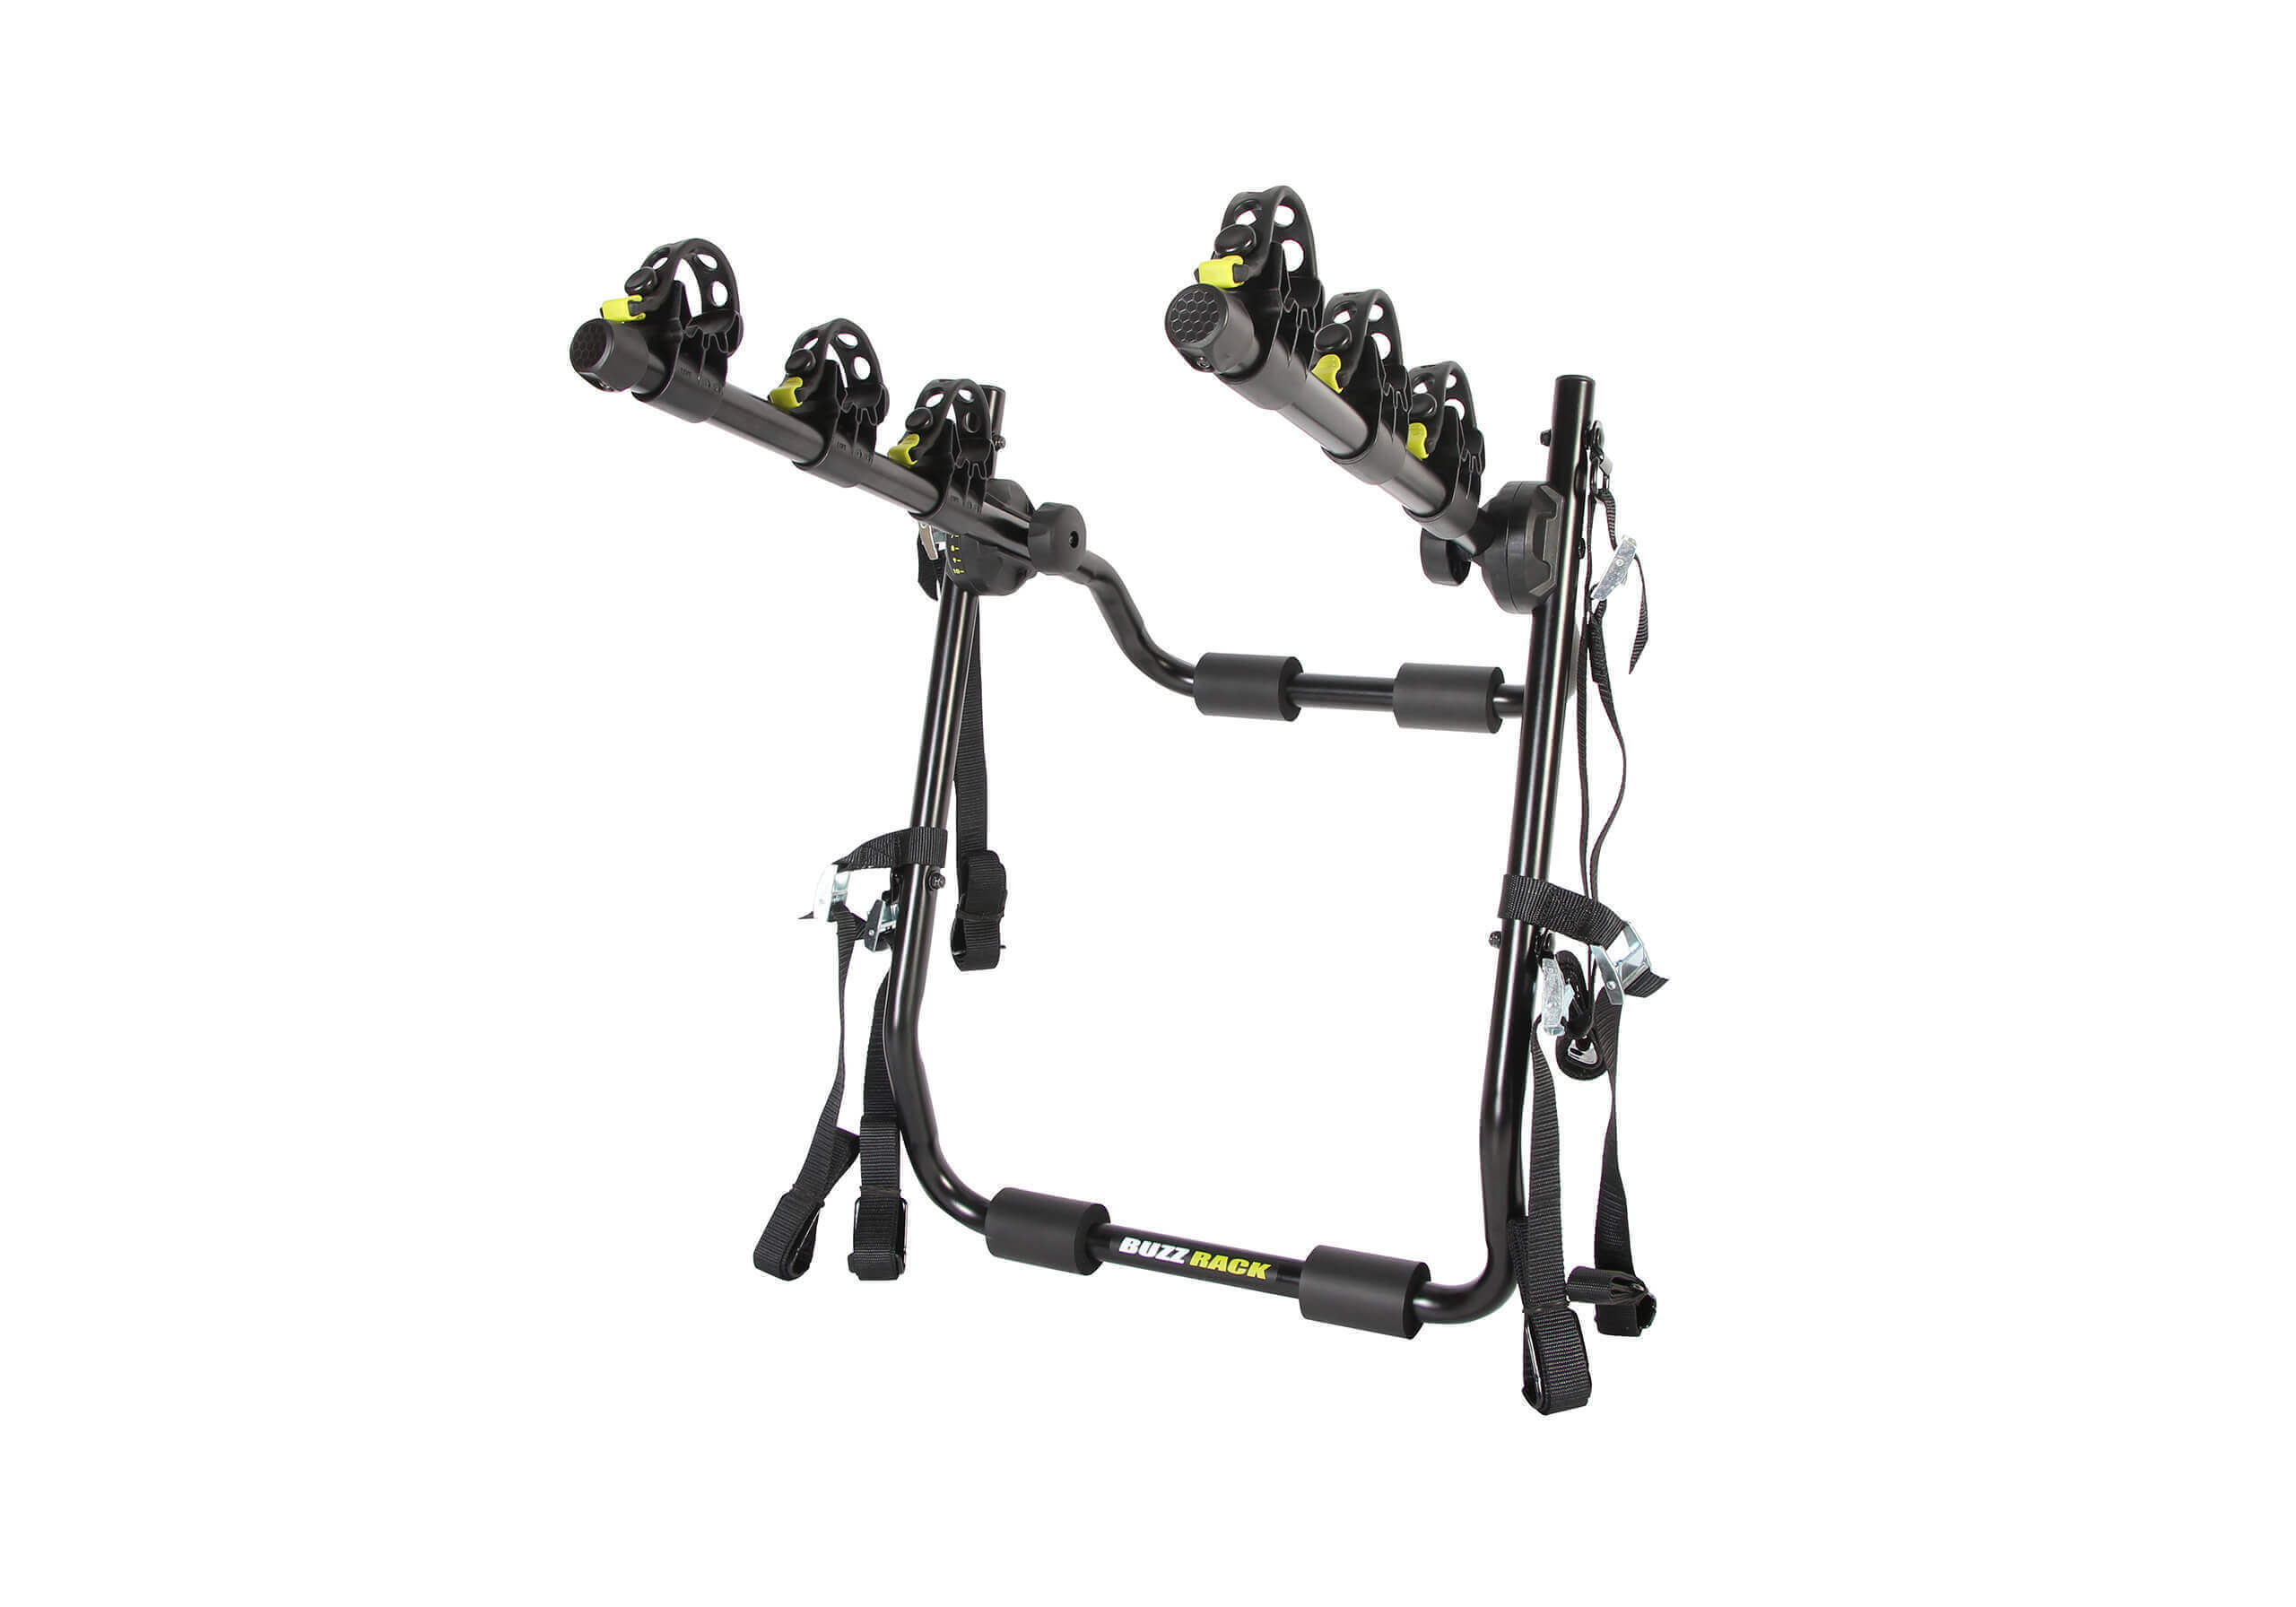 :BUZZ RACK 'Mozzquito' 3 bike strap on rack no. BRT423(car-specific)